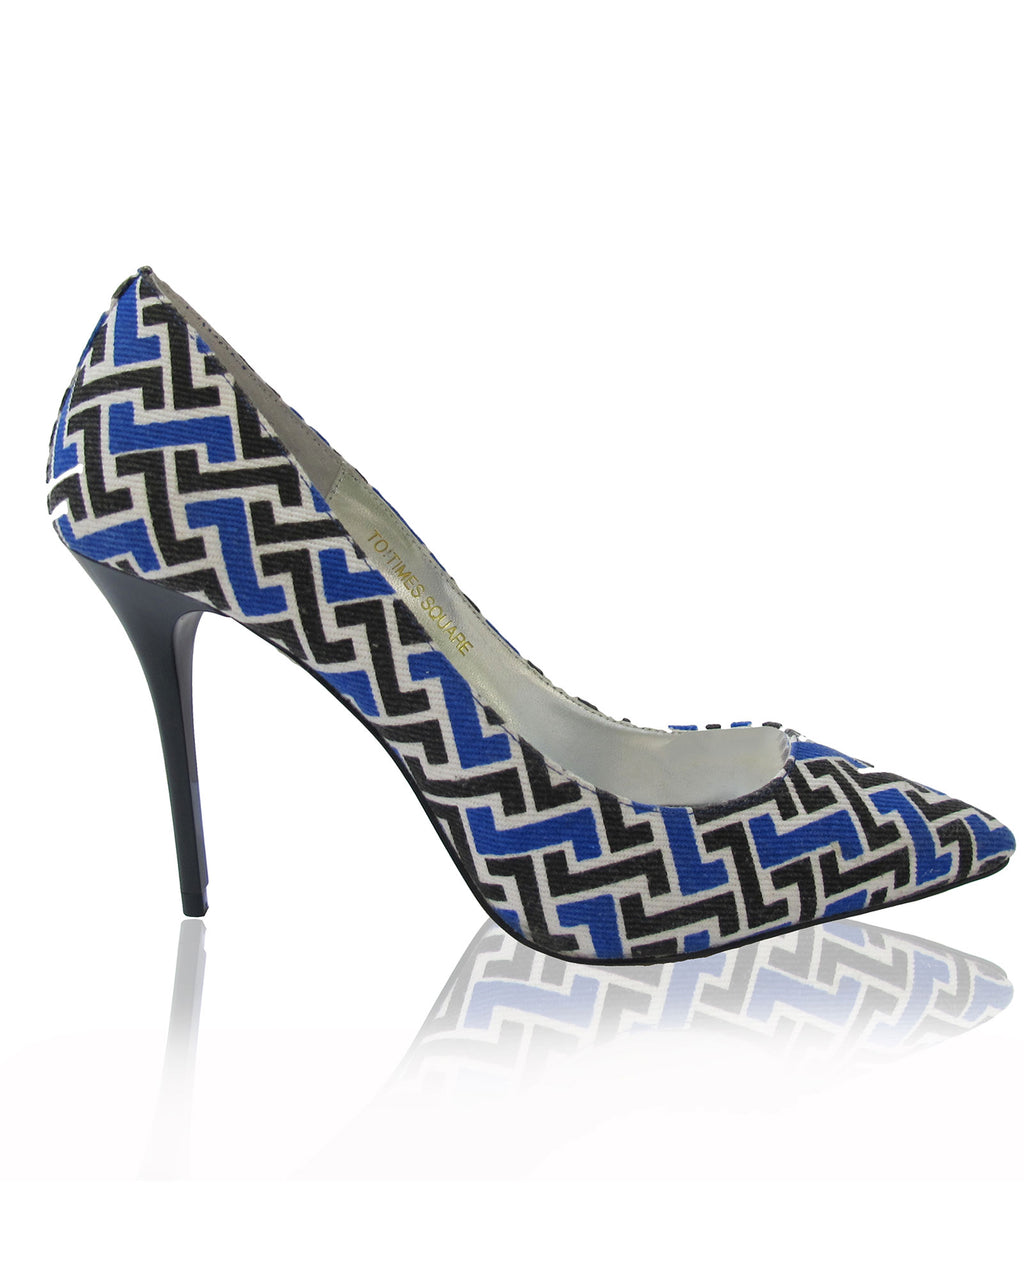 Izoa Girl Times Square Heels Blue